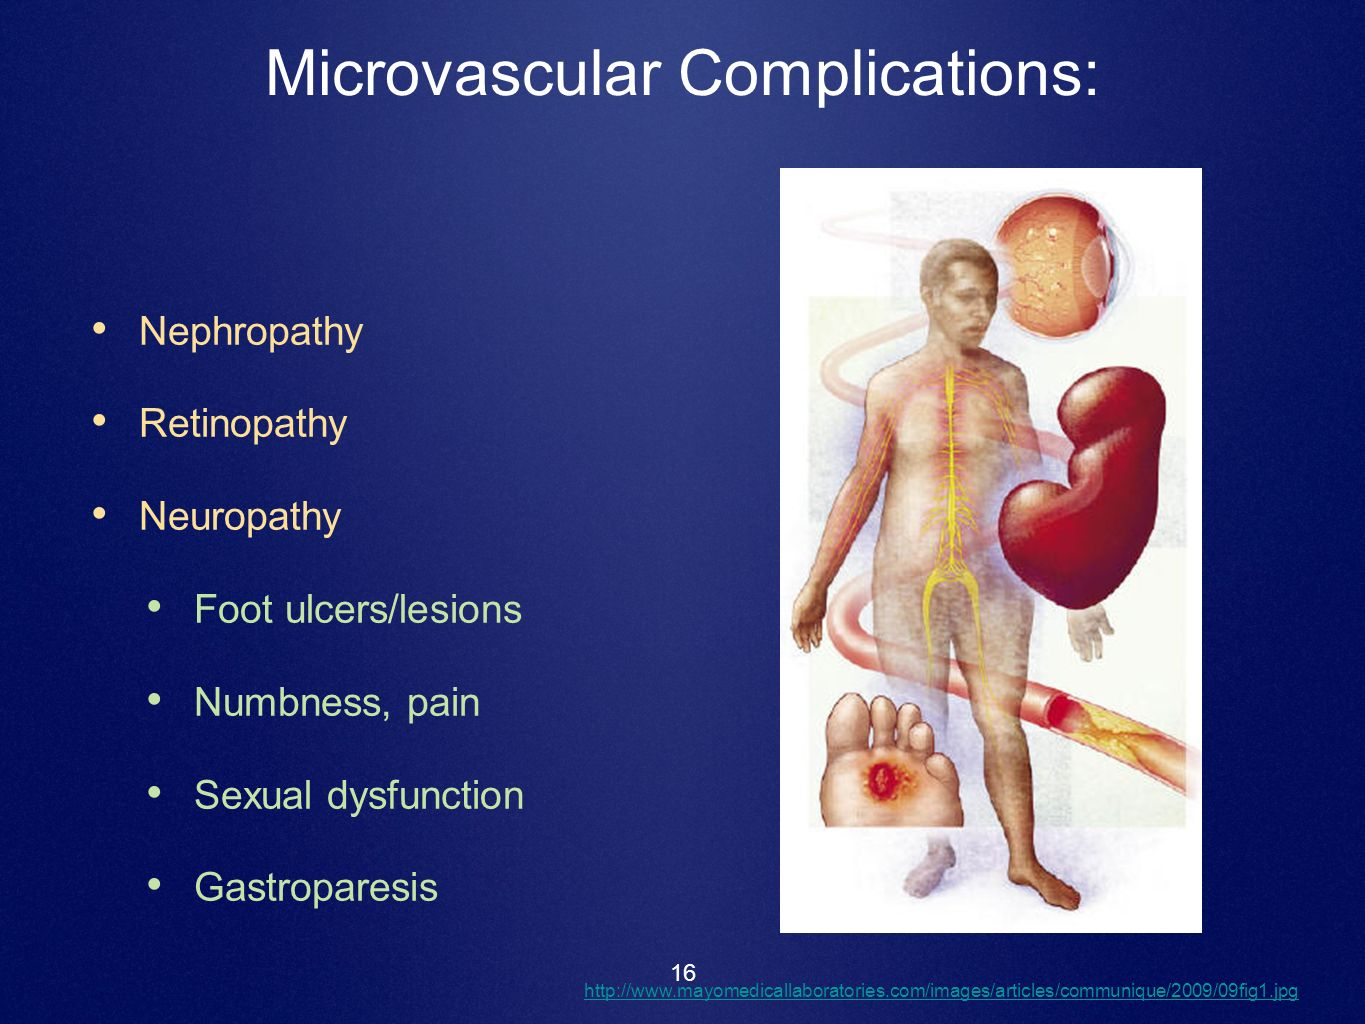 Microvascular Complications: